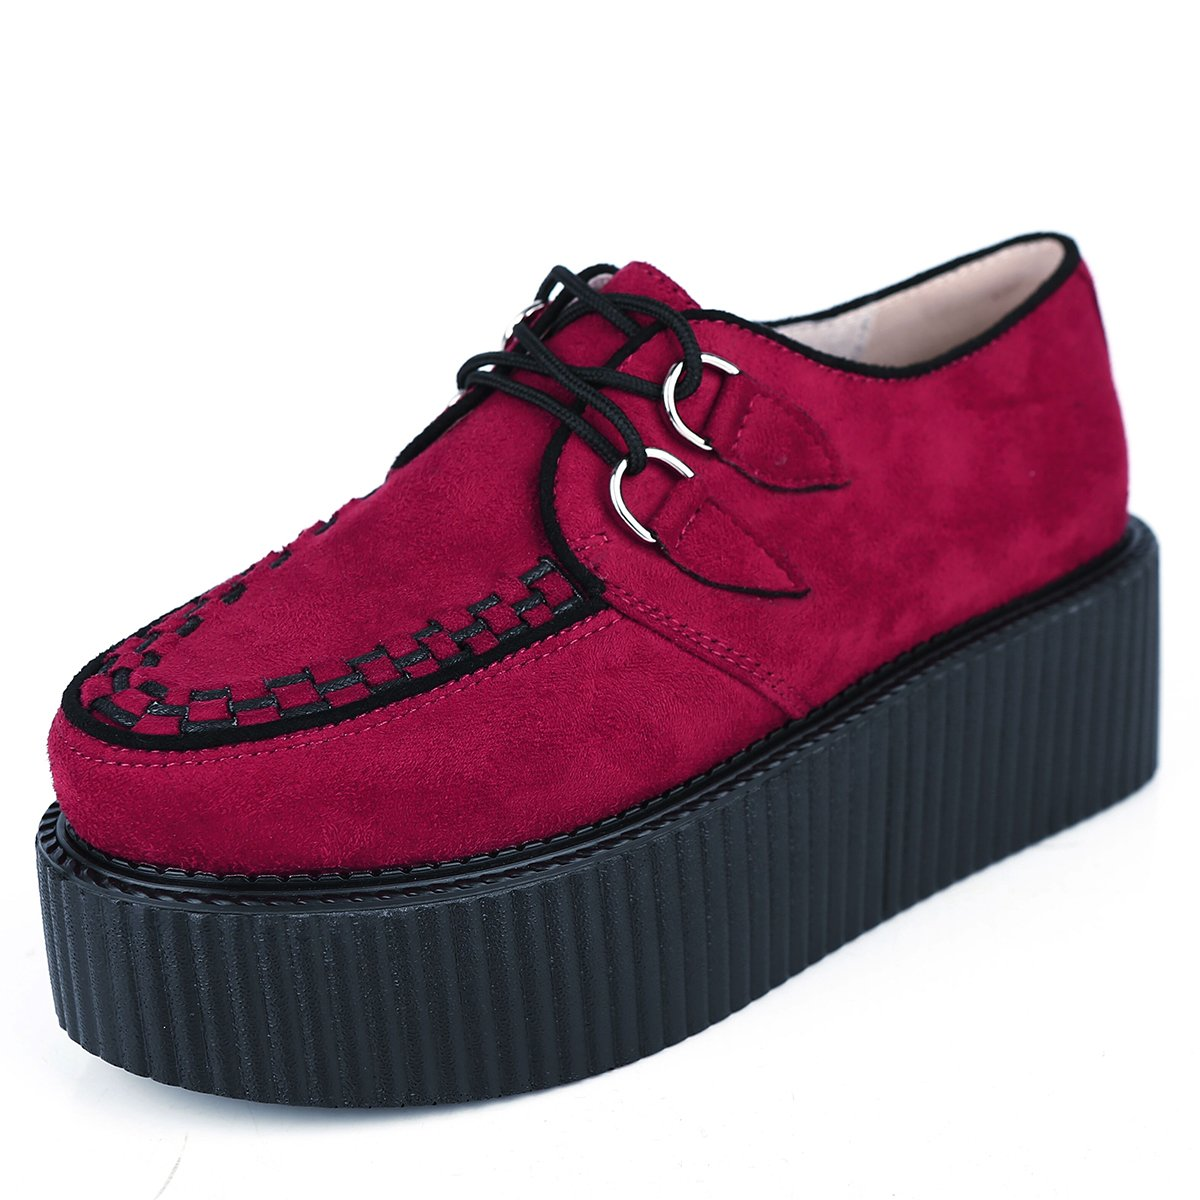 RoseG 19723 Femmes Lacets Plate Creepers Forme Gothique Punk Casual Creepers Casual Chaussures Rouge 0ca1d63 - reprogrammed.space